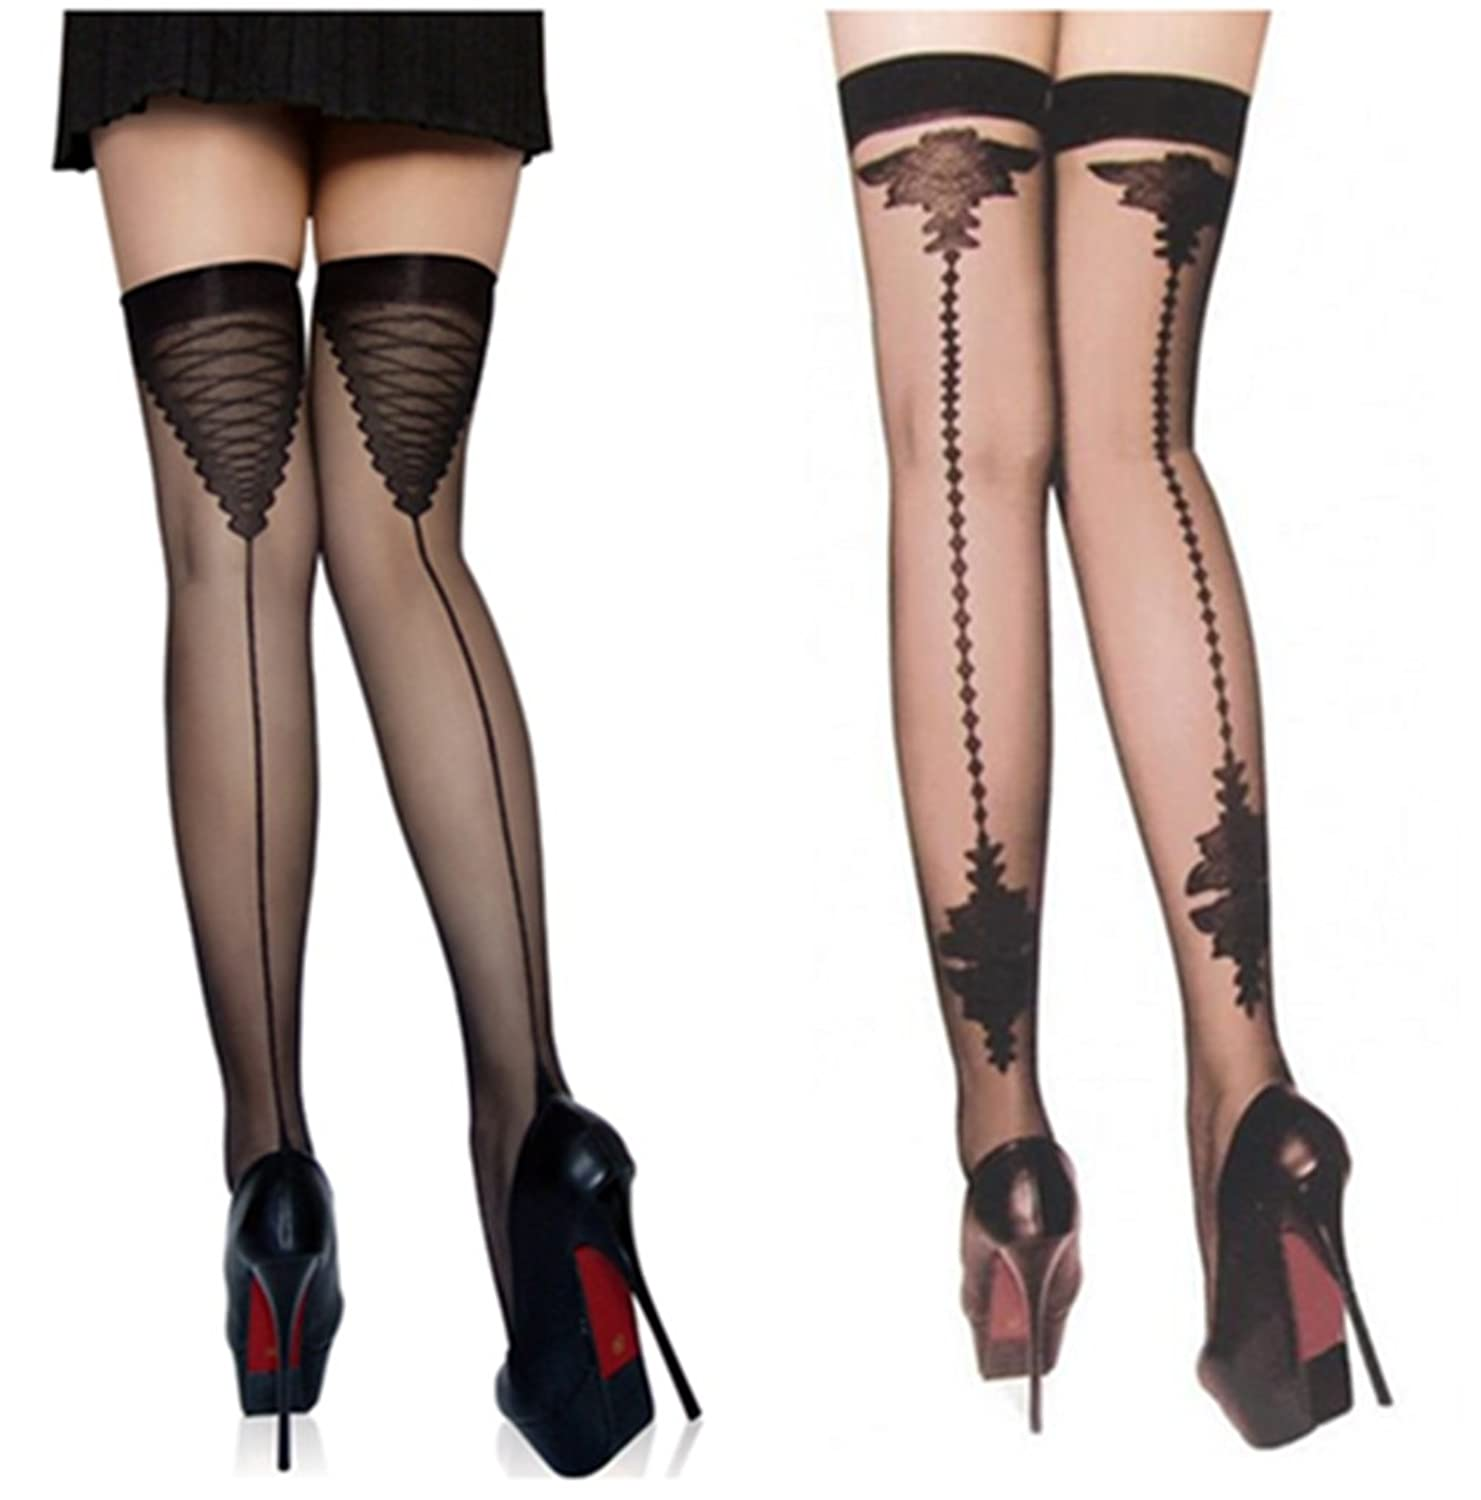 8a4f31975980c Online Cheap wholesale Vintage Nylon Stockings Cuban Sheer Thigh Highs With  Back Seam Heel Stockings For Women Garter Black Hosiery Suppliers